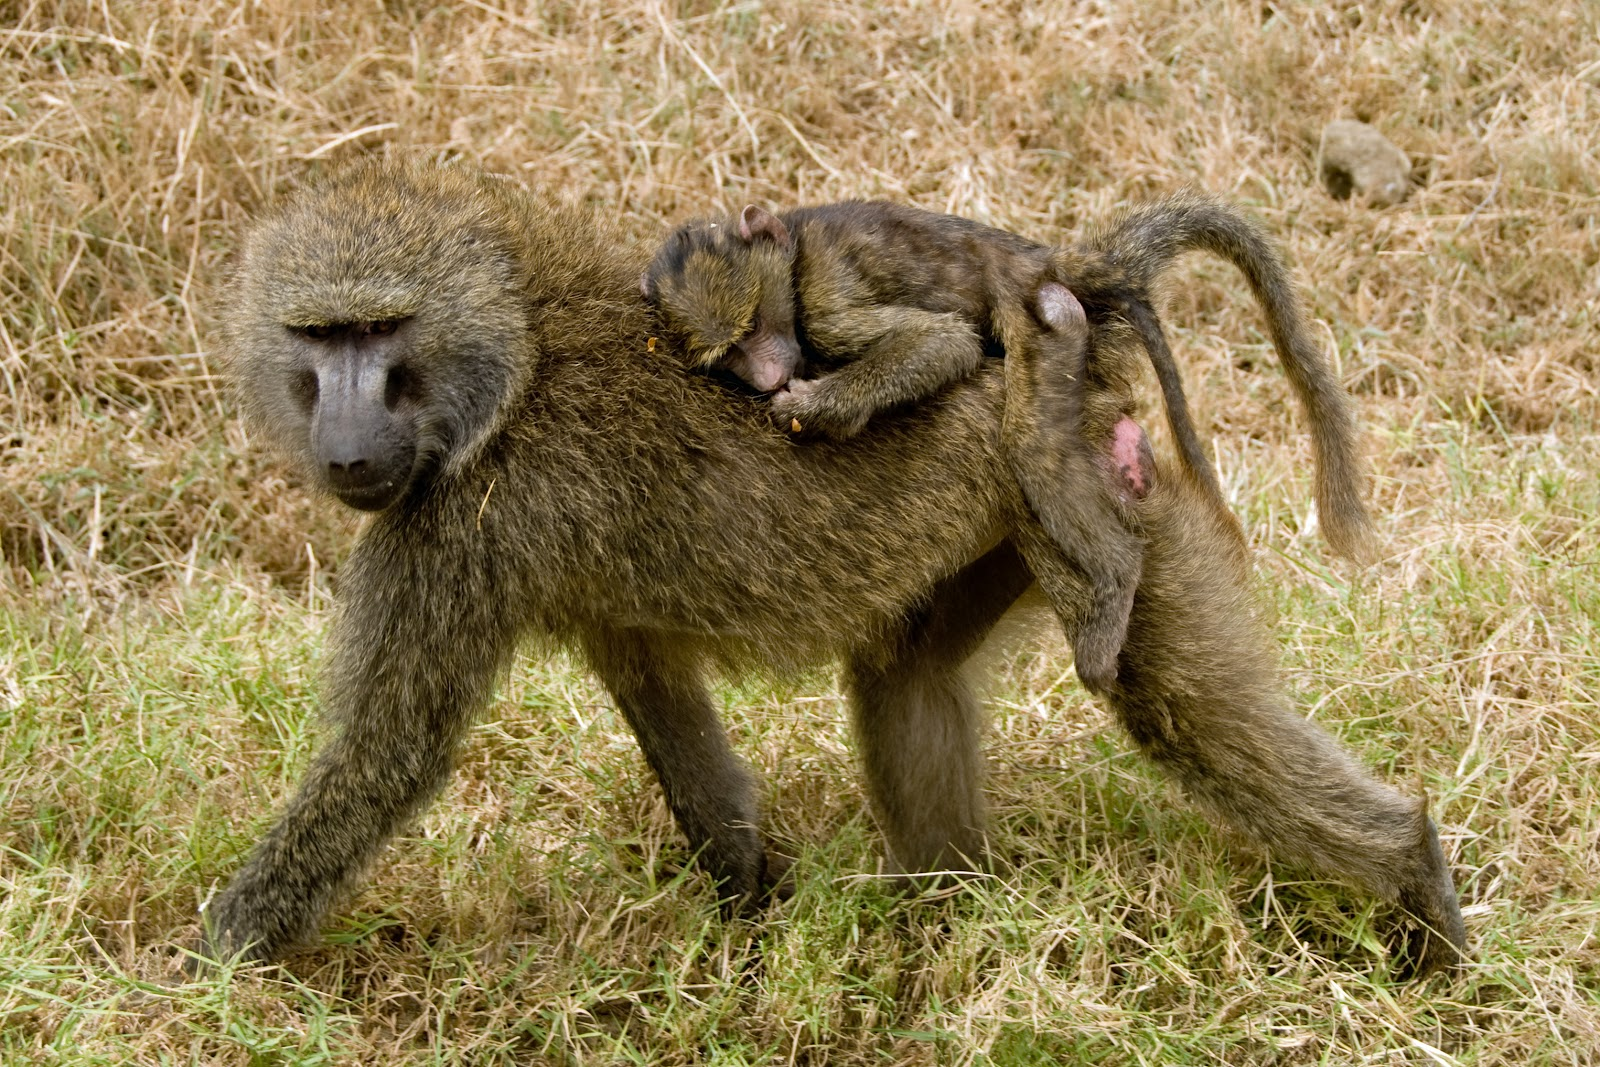 Baboon | The Biggest Animals Kingdom